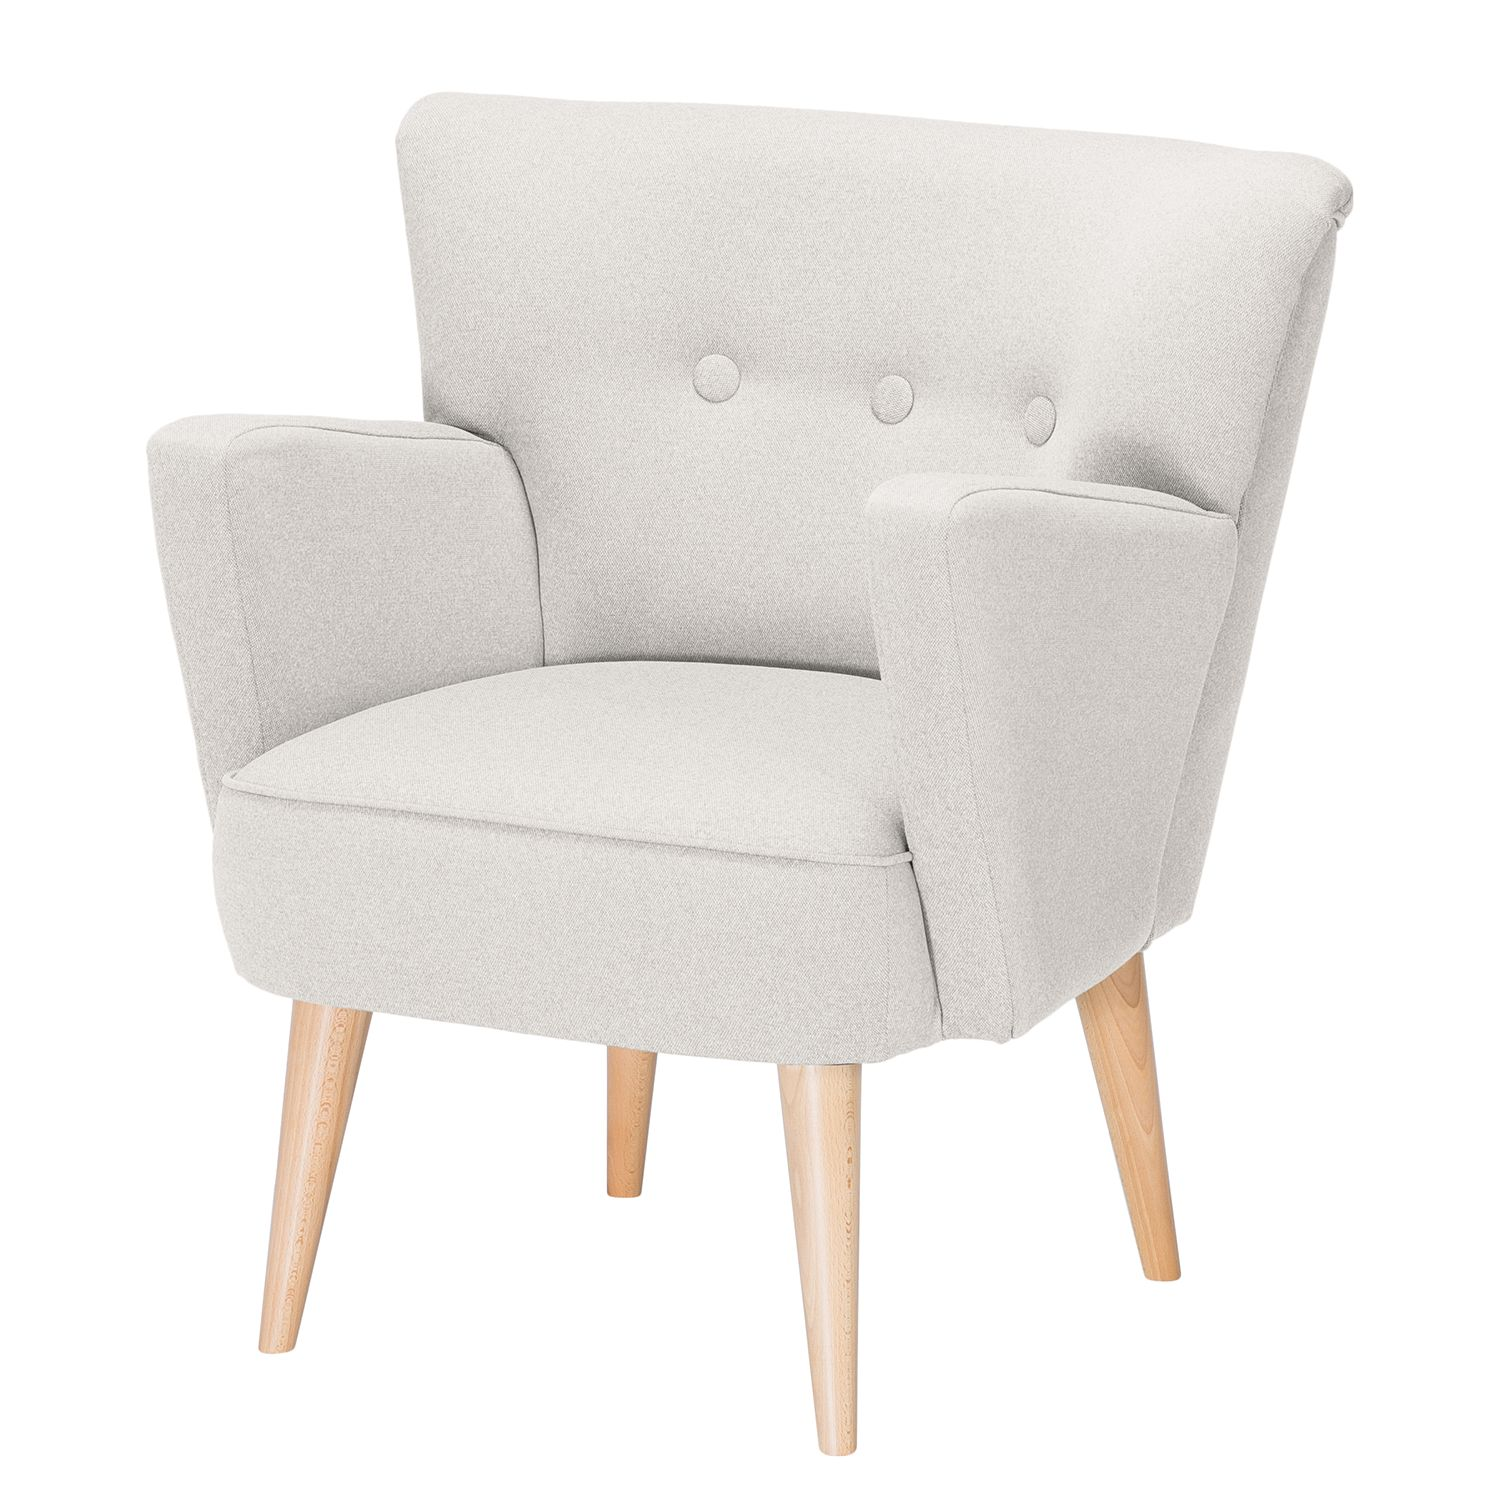 Fauteuil Bumberry - Tissu - Blanc, Morteens